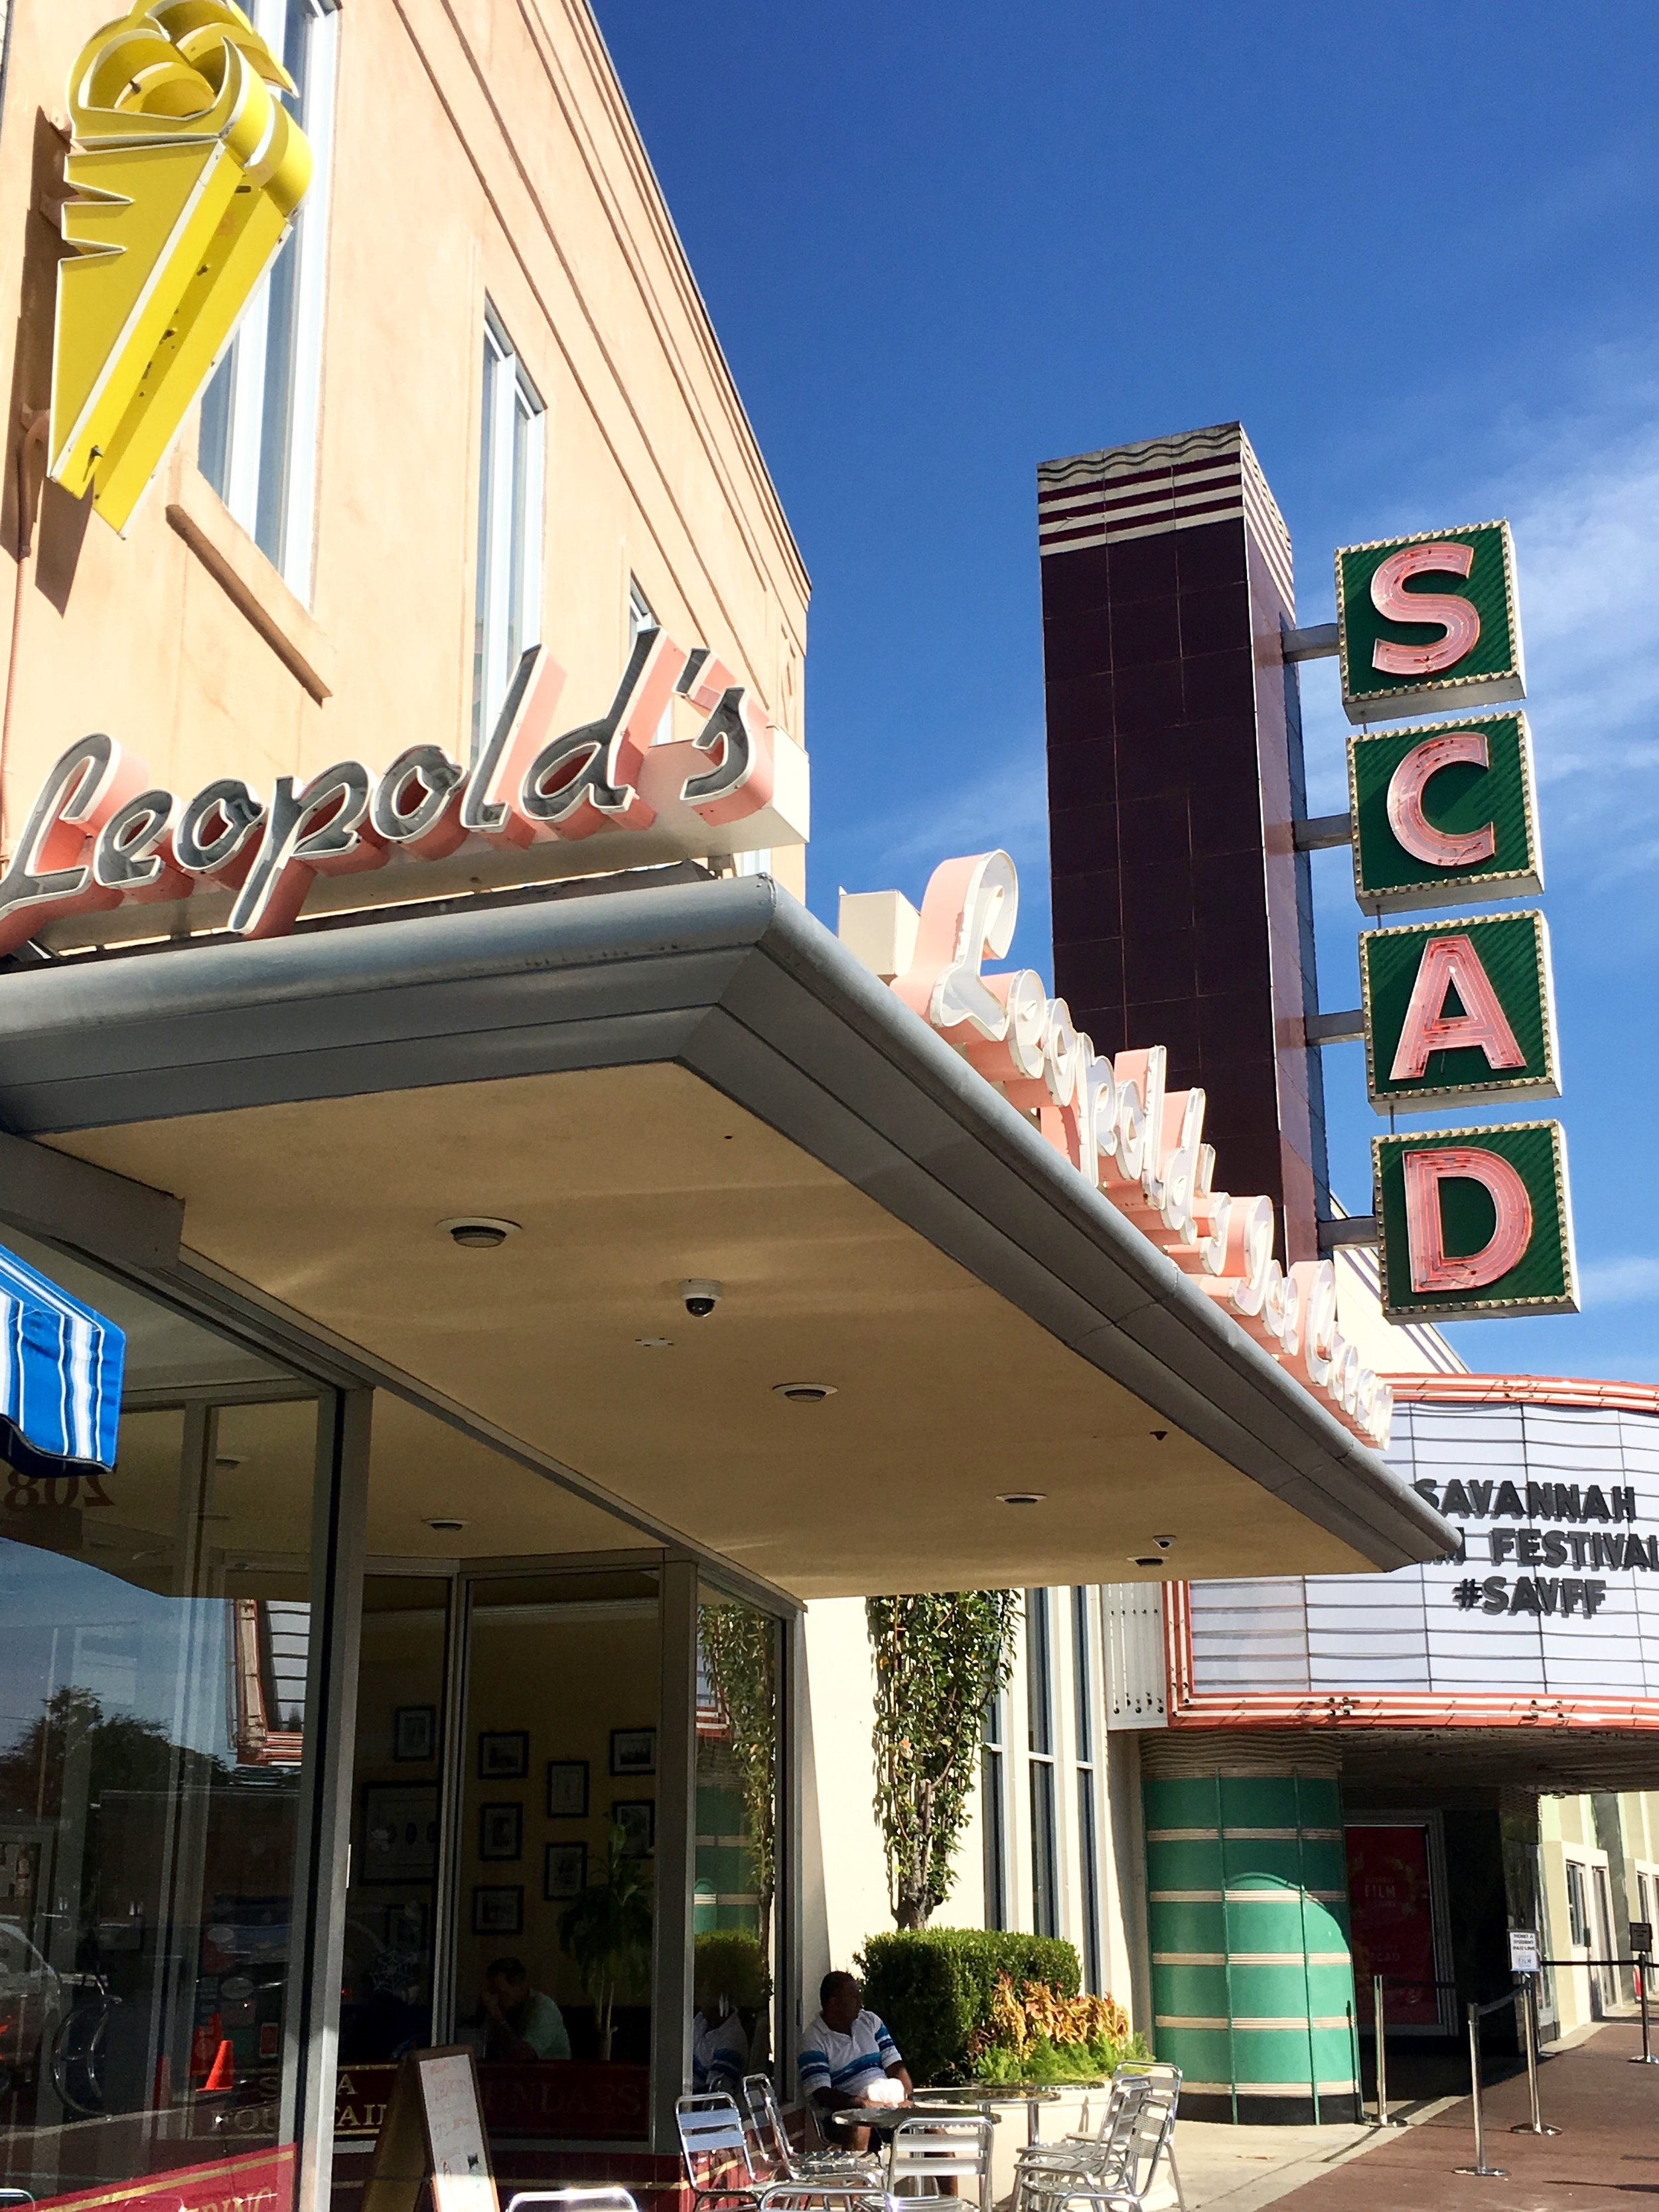 SCAD Theatre next to Leopold's Ice Cream